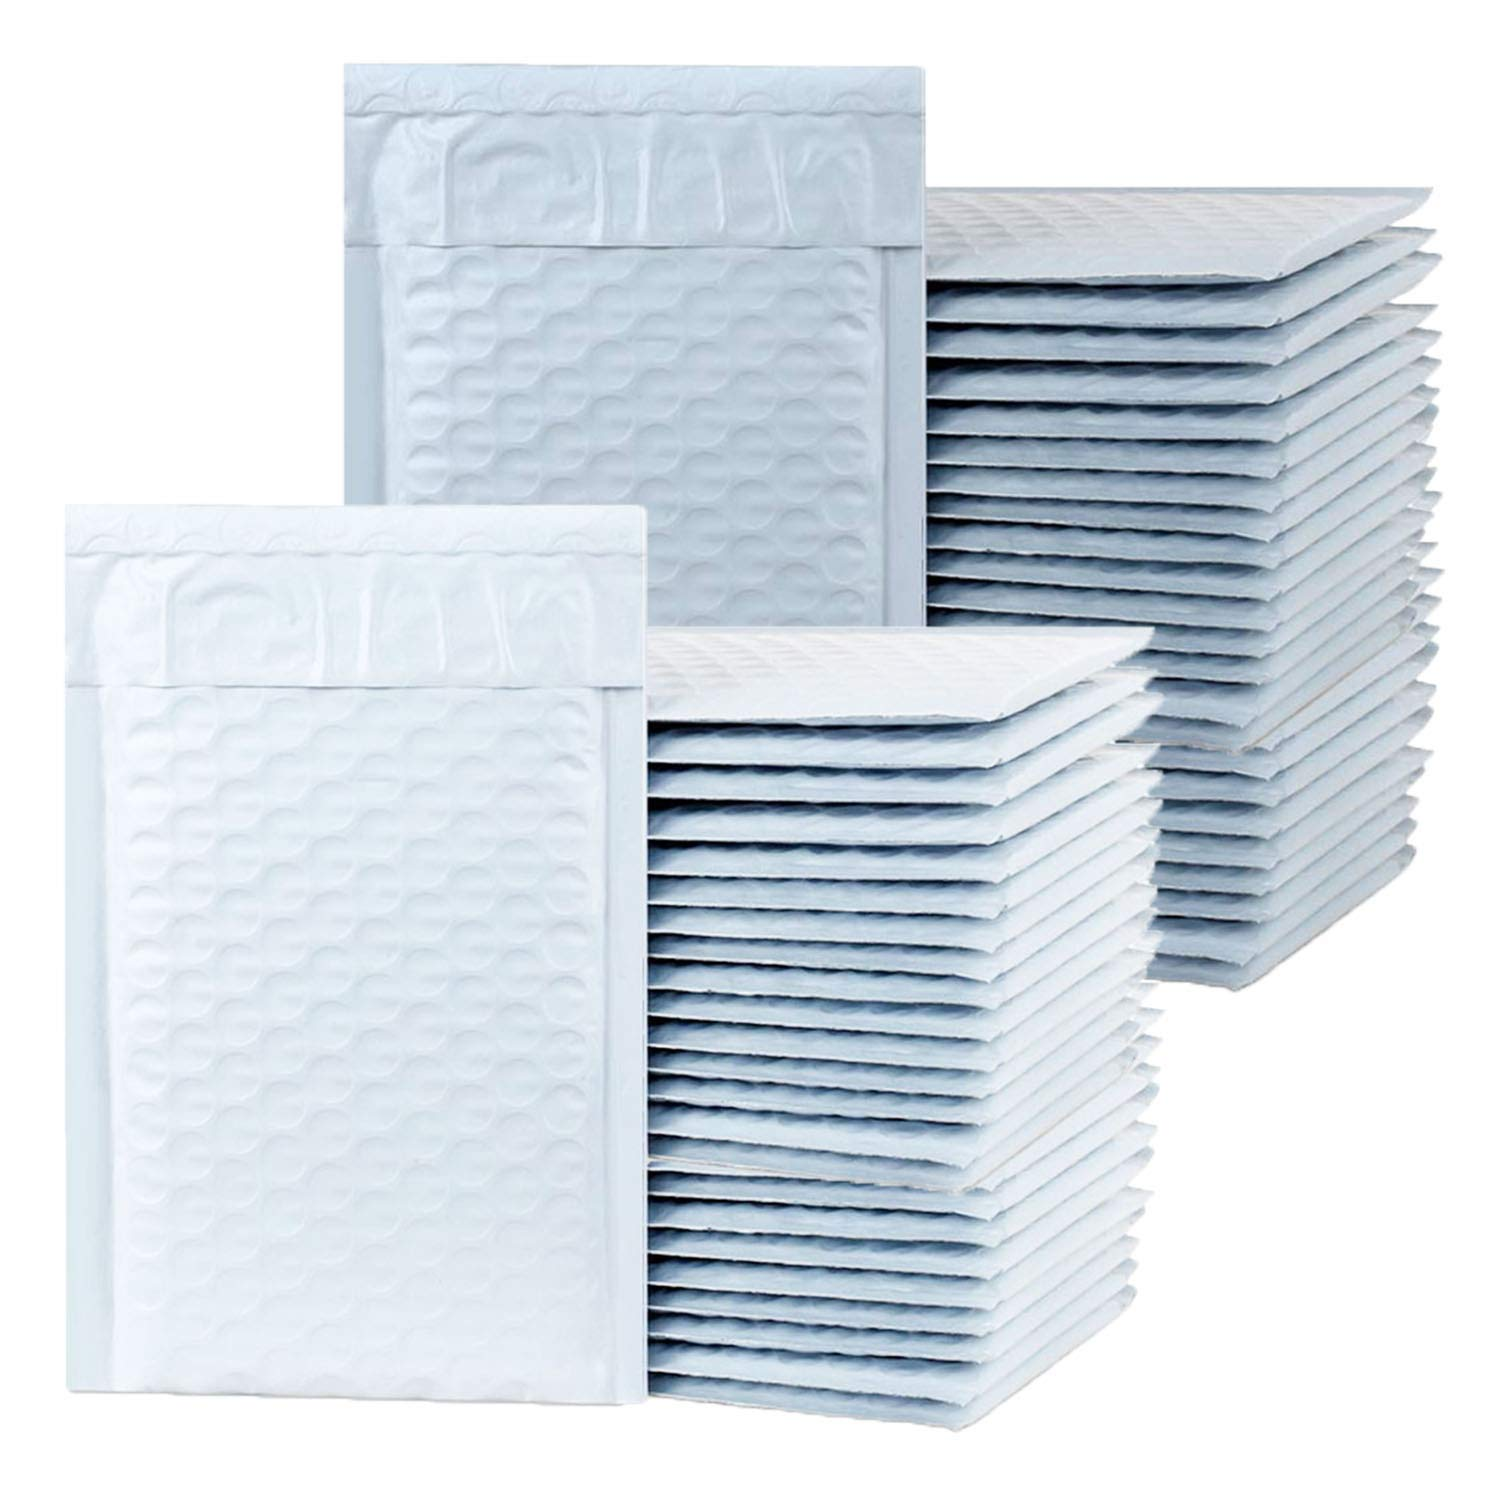 "iMBAPrice - 50 (#000) 4"" x 8"" Pure White Poly Bubble MAILERS Padded Shipping ENVELOPES 4 x 8 - Total 50 Envelopes"